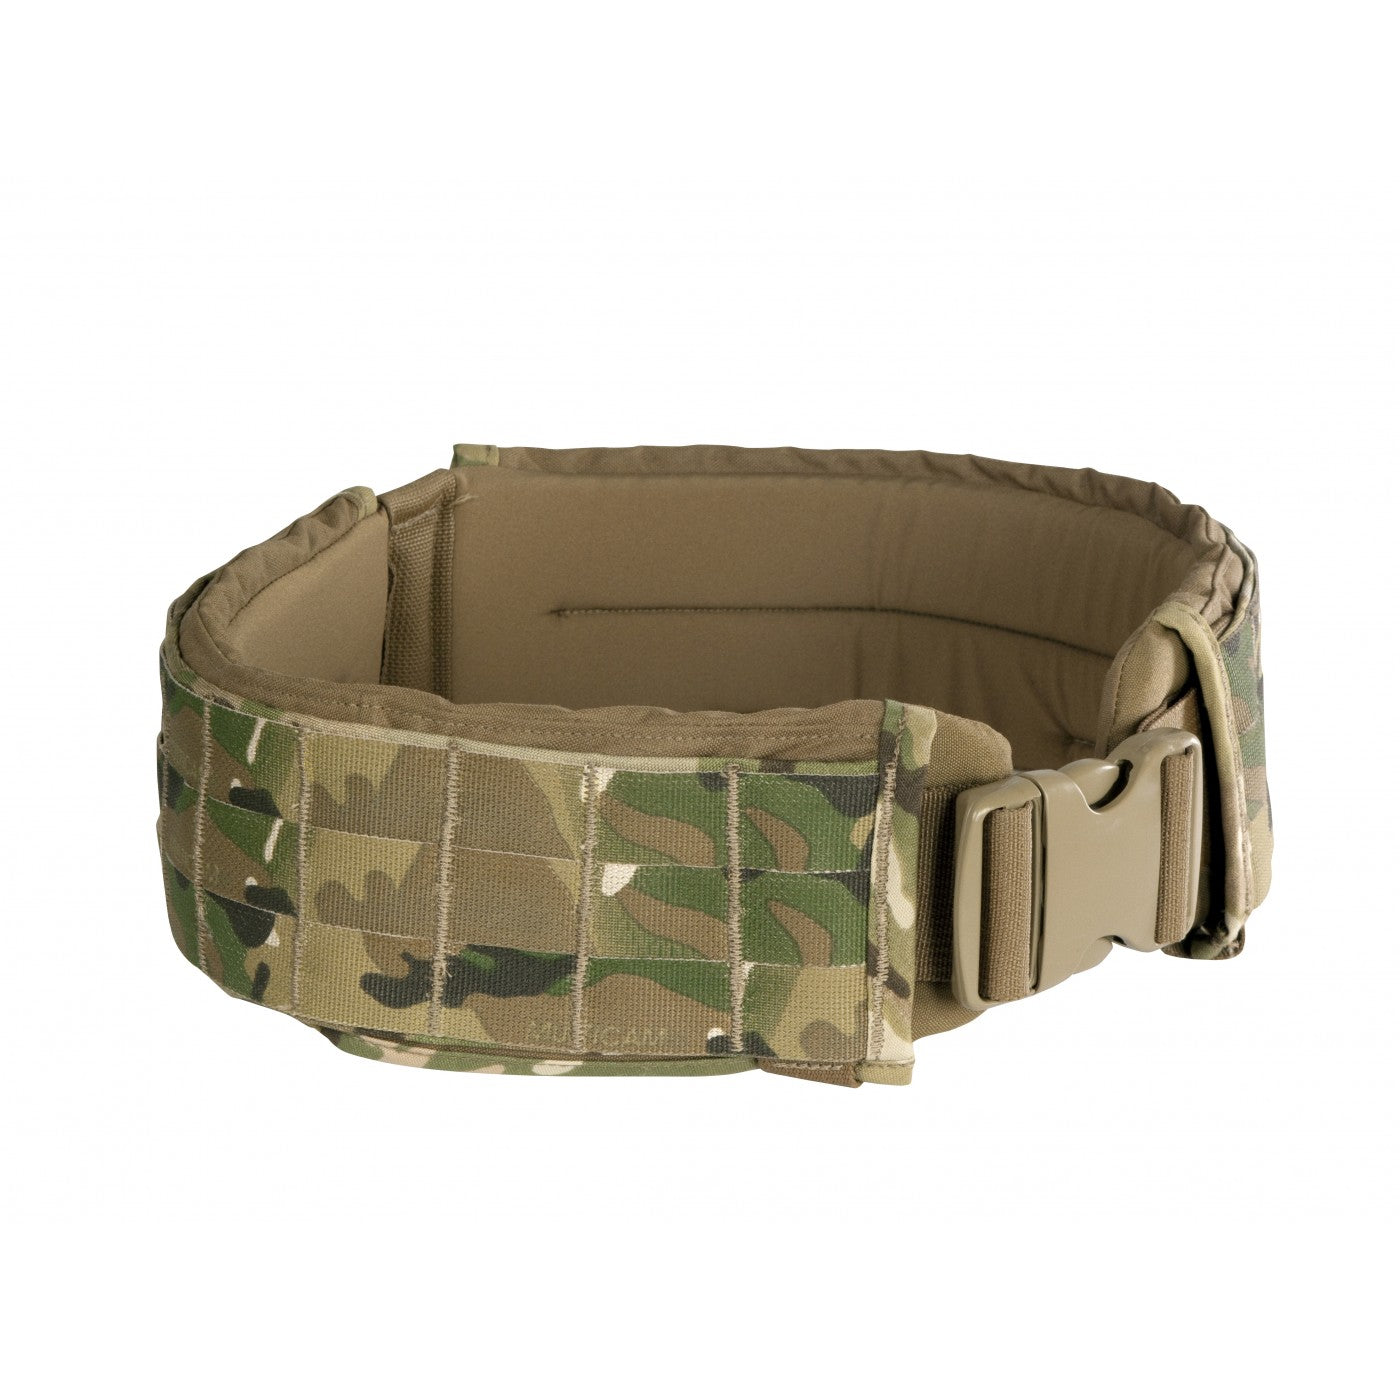 Granite Tactical Gear Padded Patrol Belt